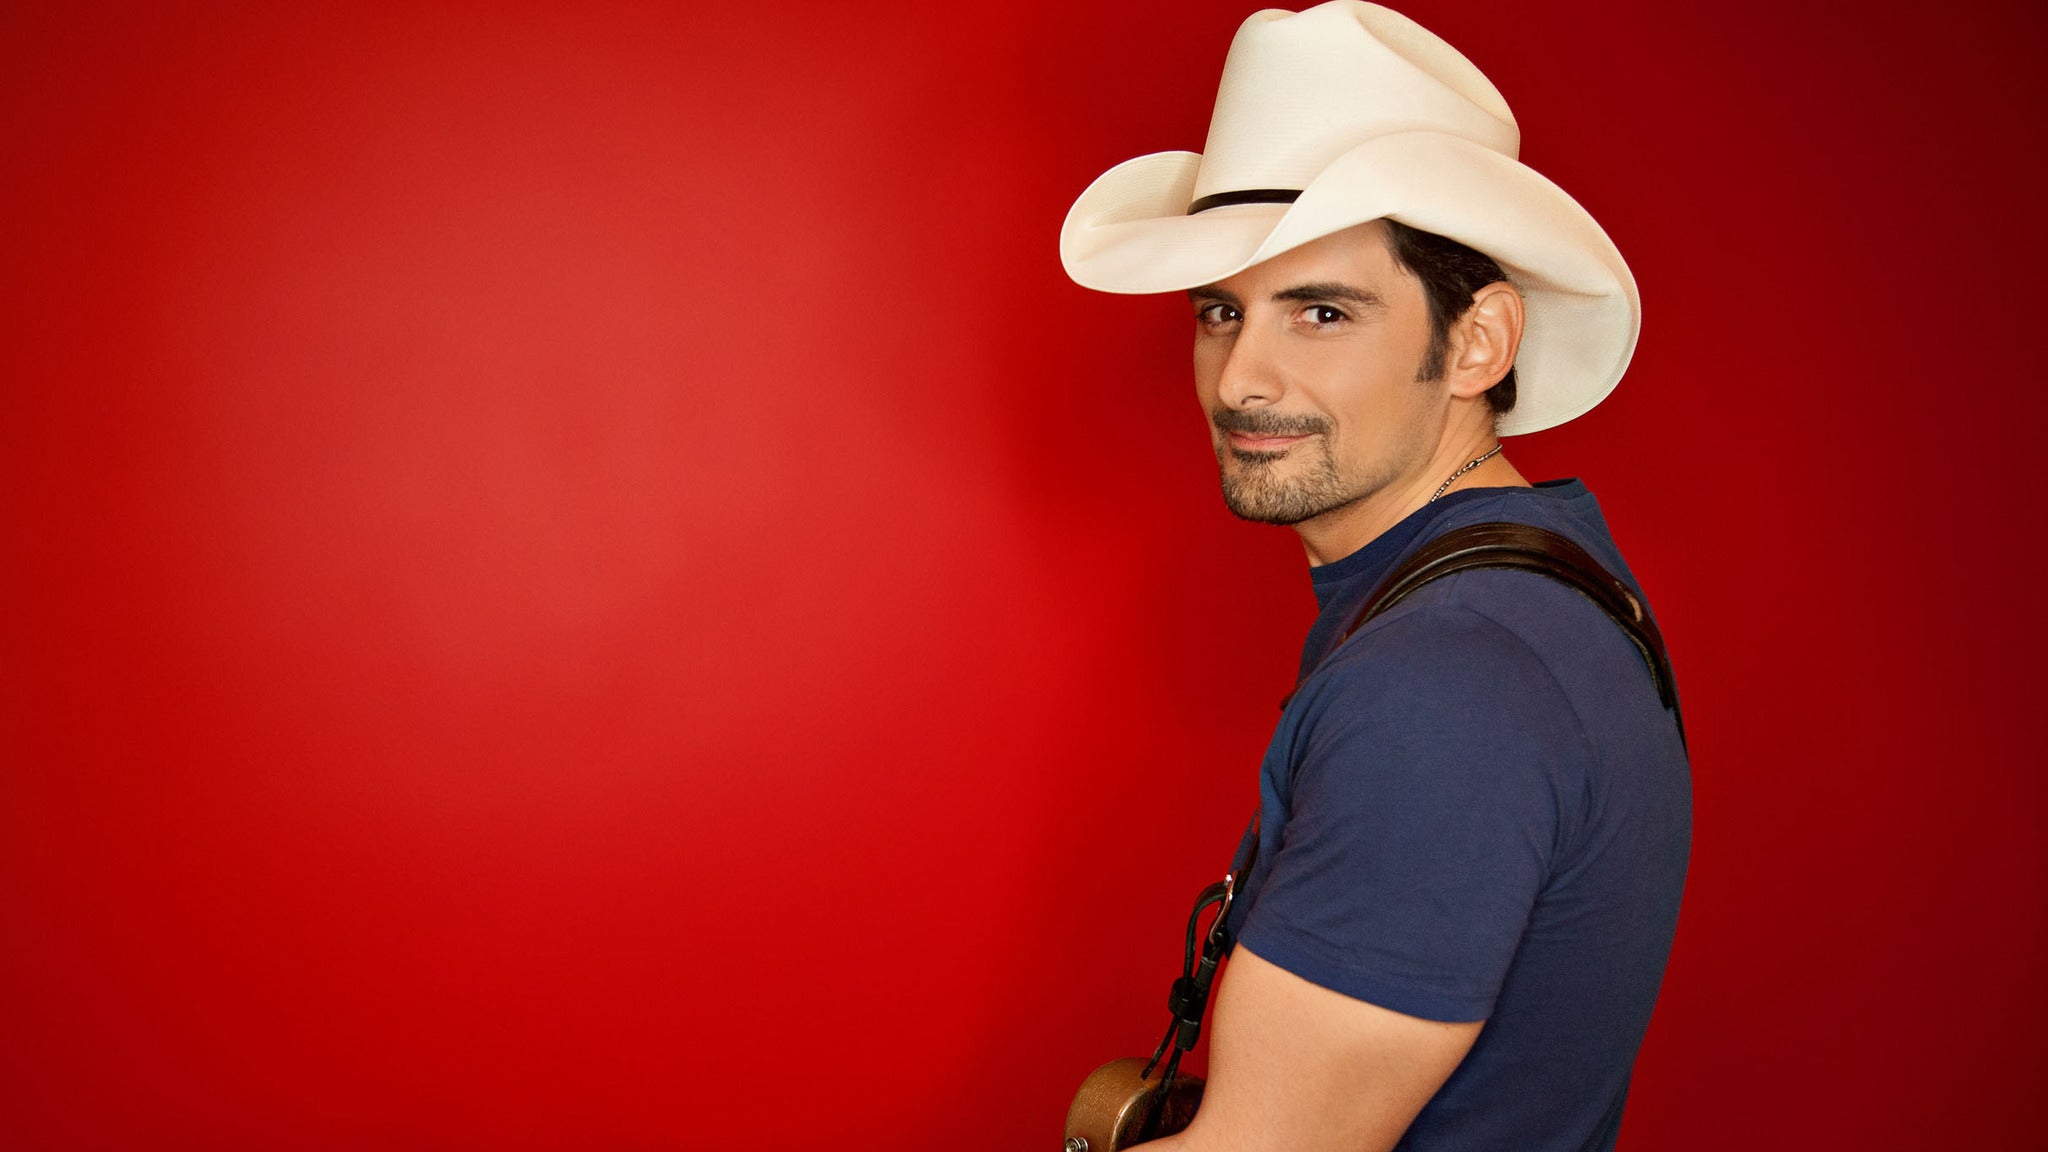 Brad Paisley Weekend Warrior World Tour at Verizon Arena